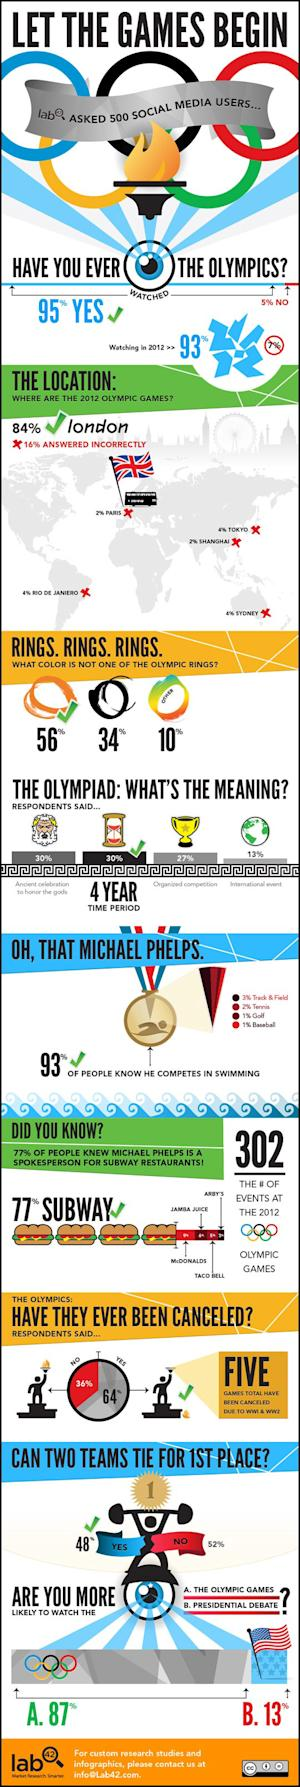 What Do Social Media Users Know About the Olympics? [INFOGRAPHIC]